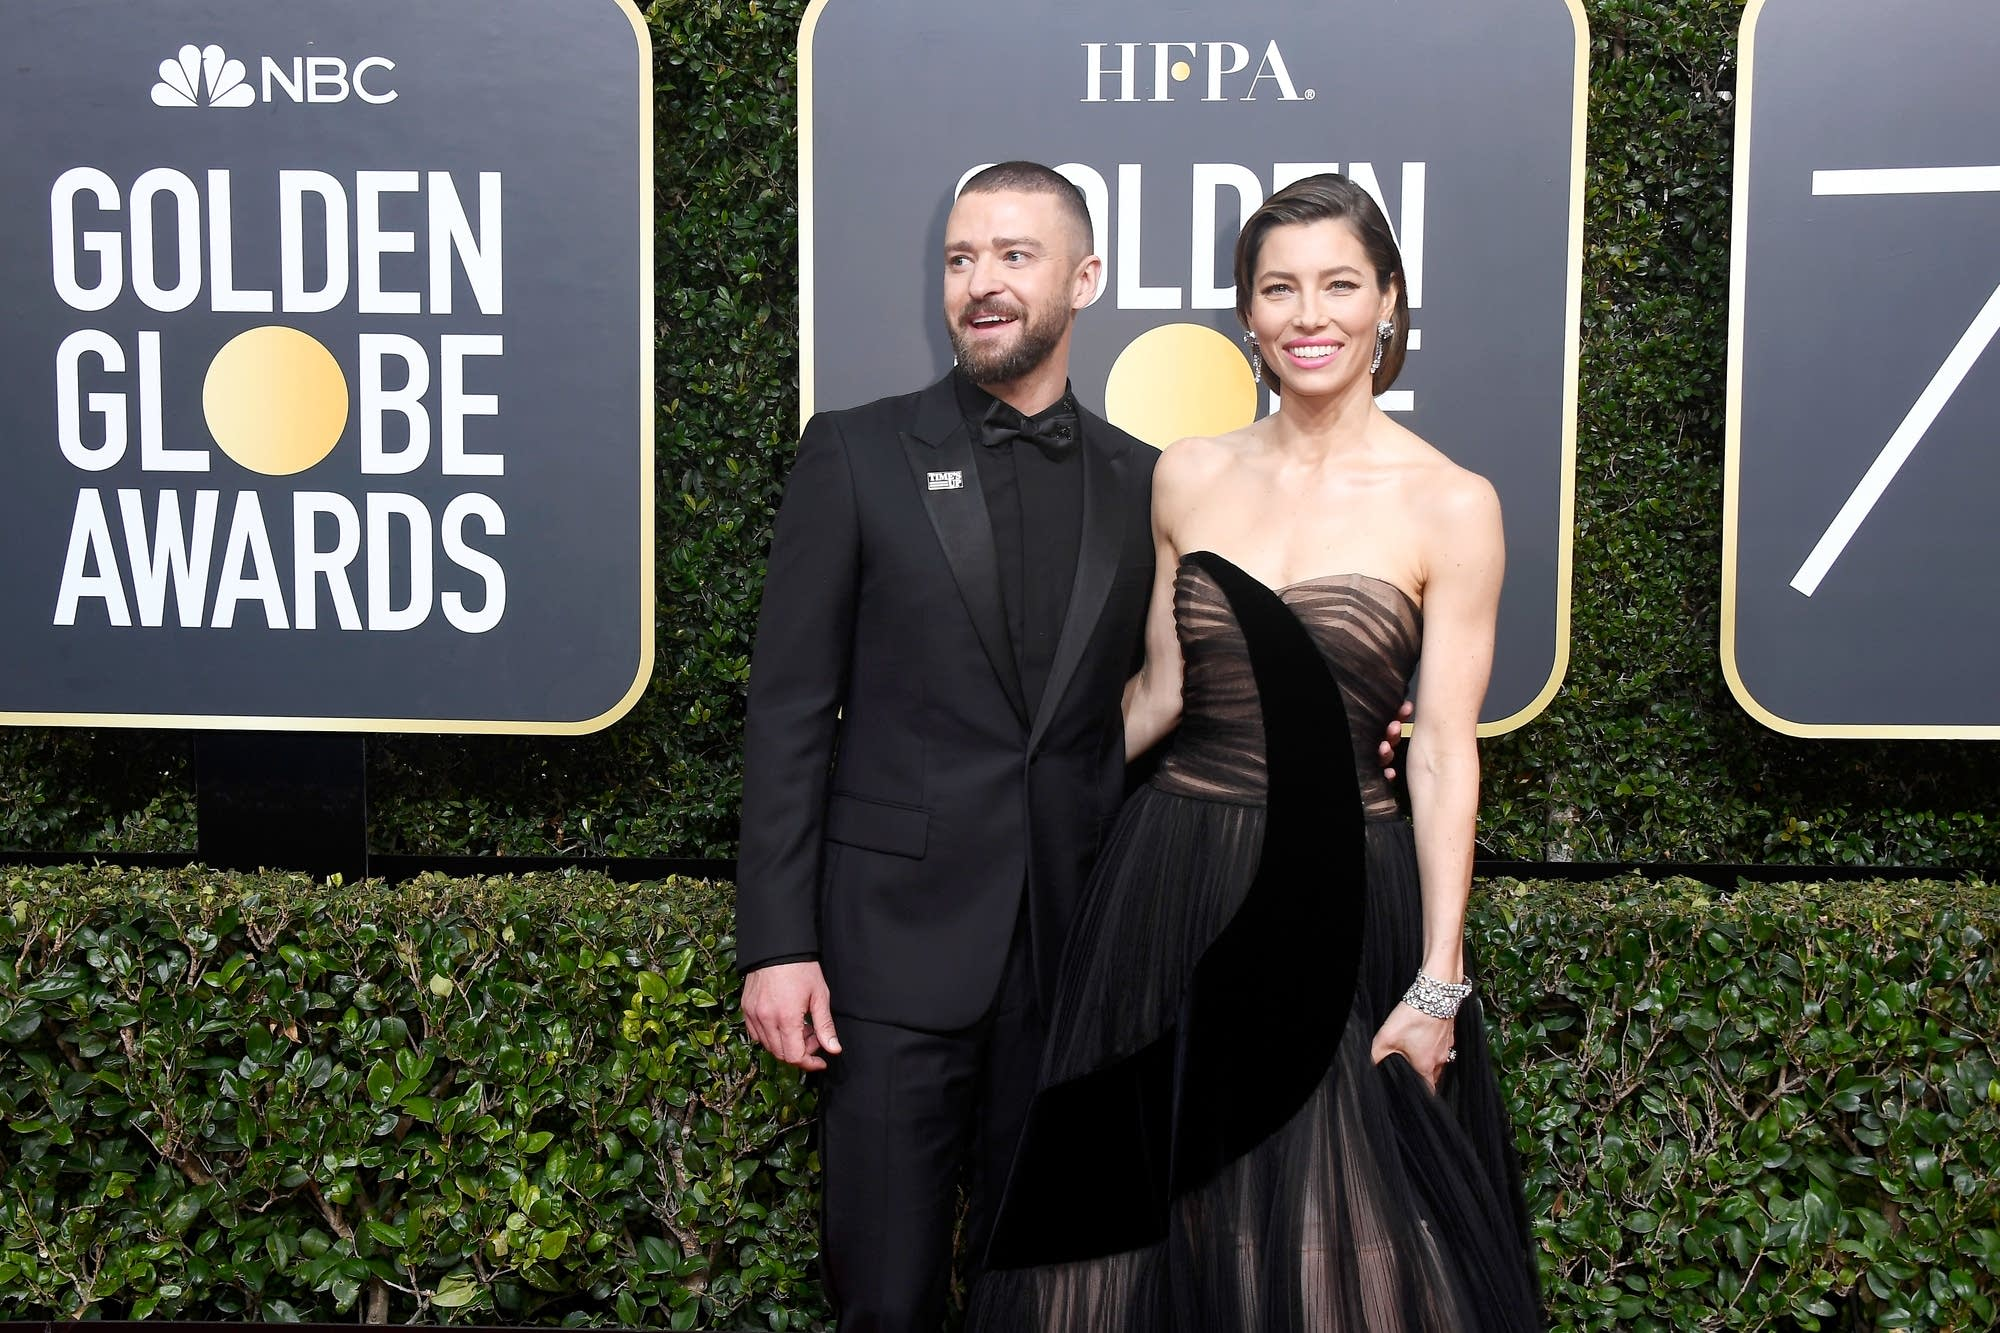 Justin Timberlake and Jessica Biel arrive at the Golden Globes.